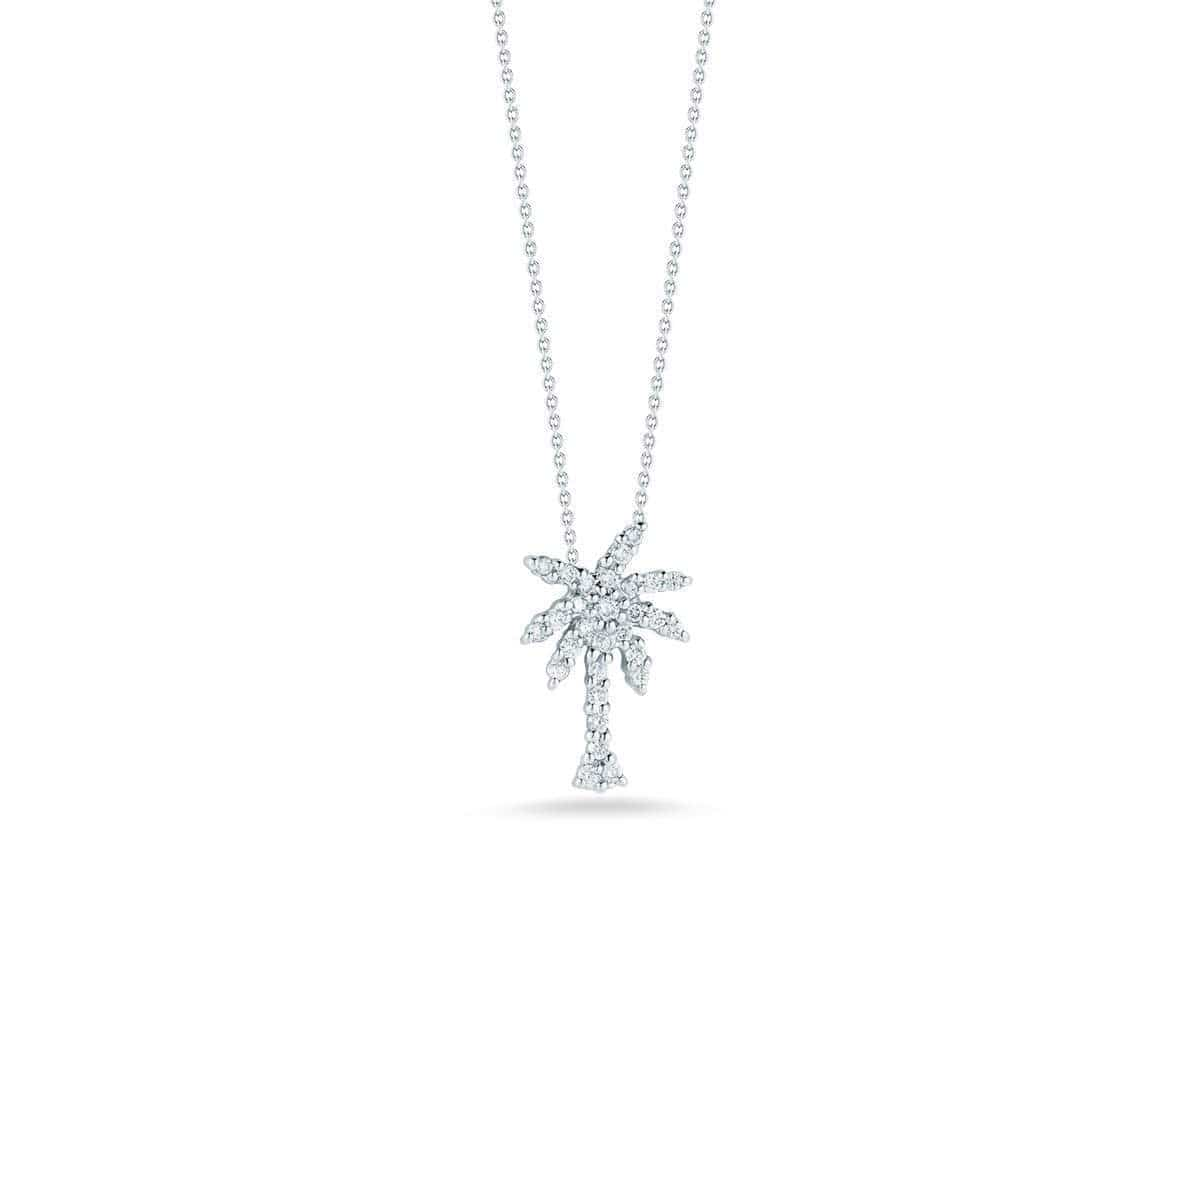 18k White Gold & Diamond Palm Tree Necklace - 001236AWCHX0